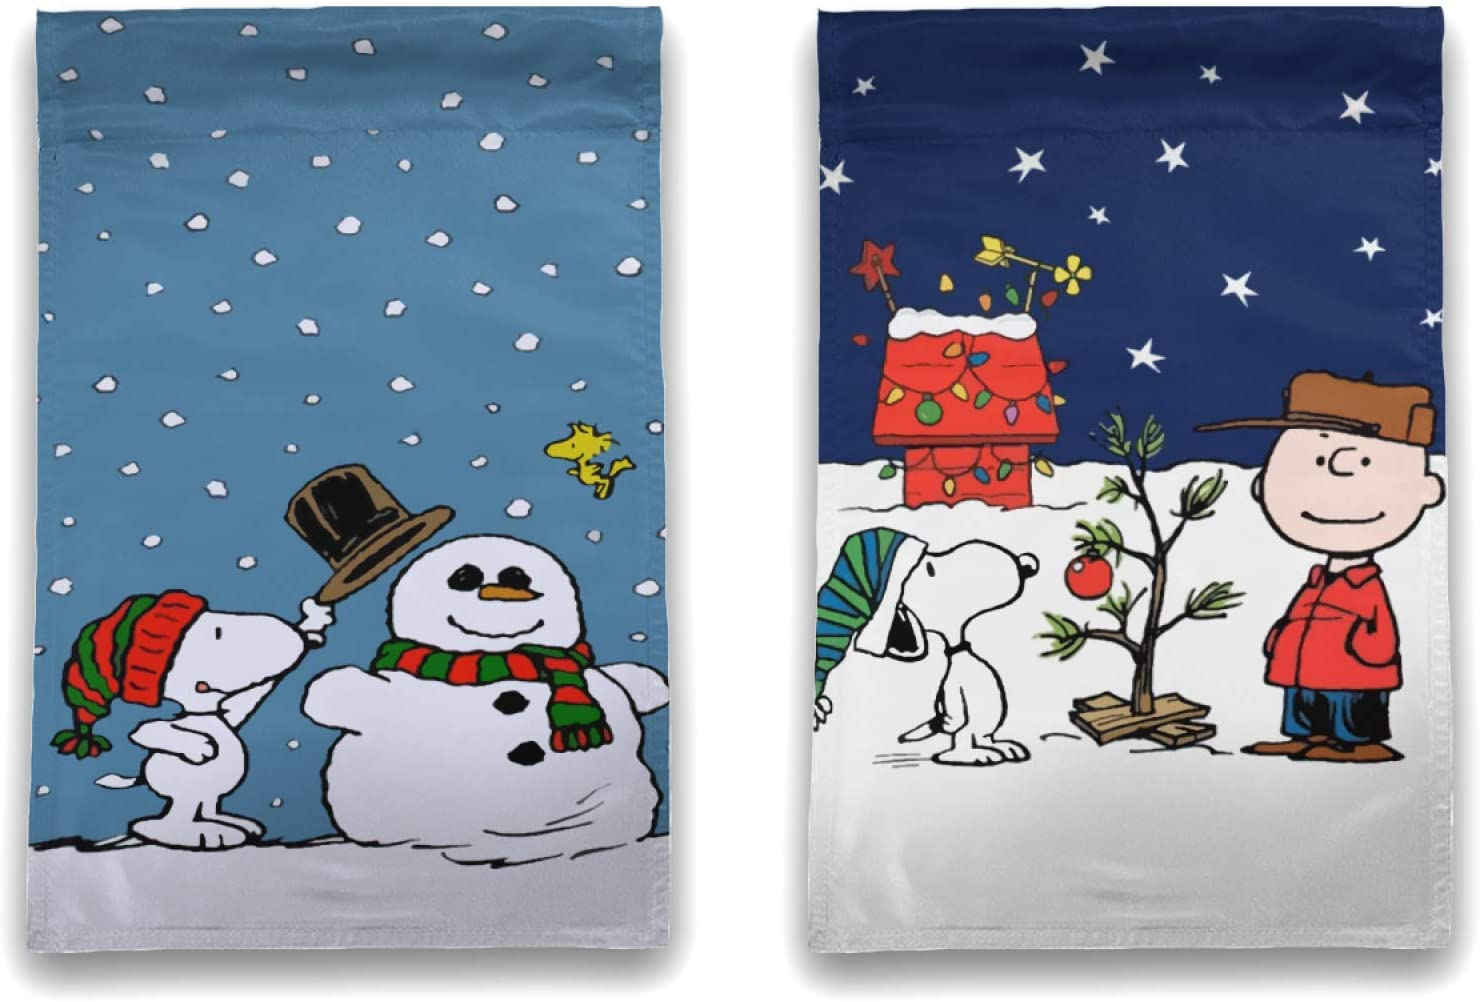 WOMFUI Peanuts Charlie Brown Christmas Garden Flag Different Patterns on Both Sides Outdoor Flags 12×18 Inch